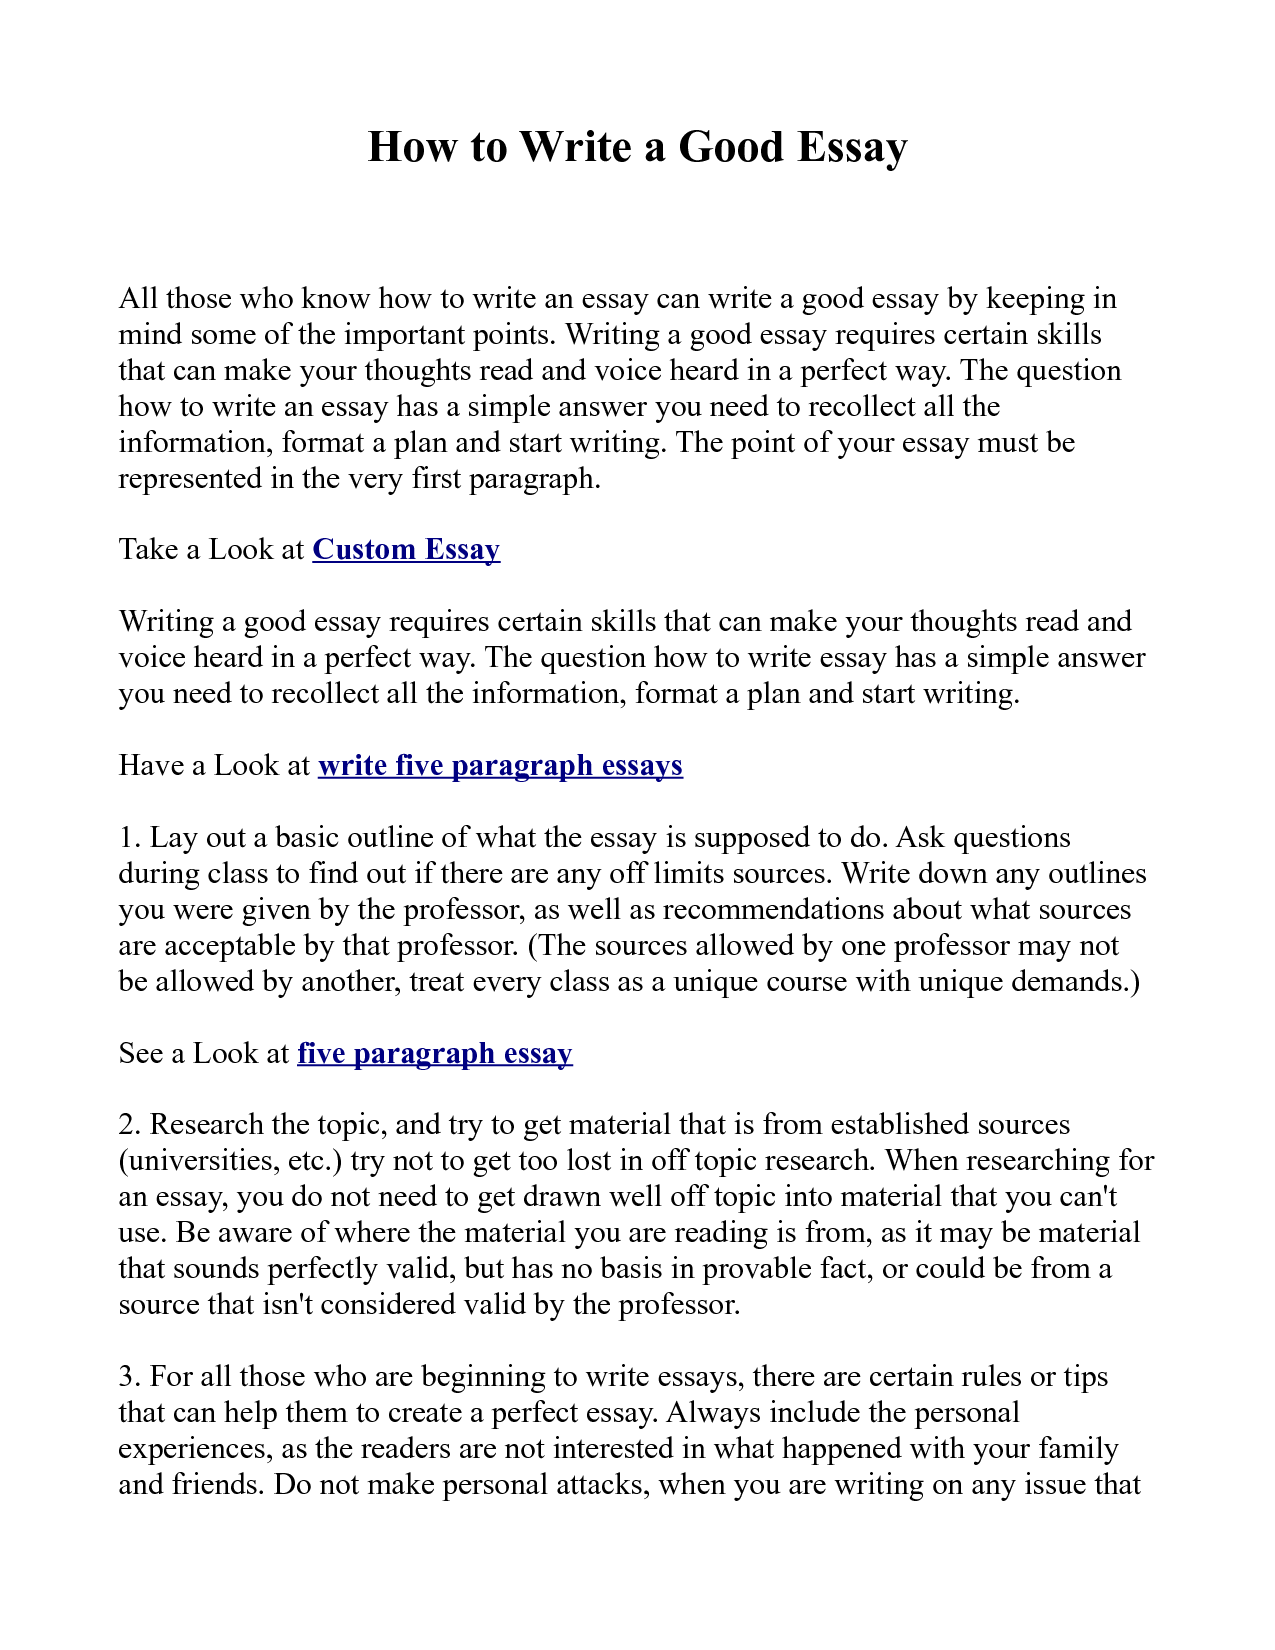 how to write a good reflective essay introduction Reflection paper format it is important that you know how to write a reflection paper format in order to deliver a good reflective essay in fact, writing a format is the first task that you should always get to since it will enable you to come up with a better plan for the paper.